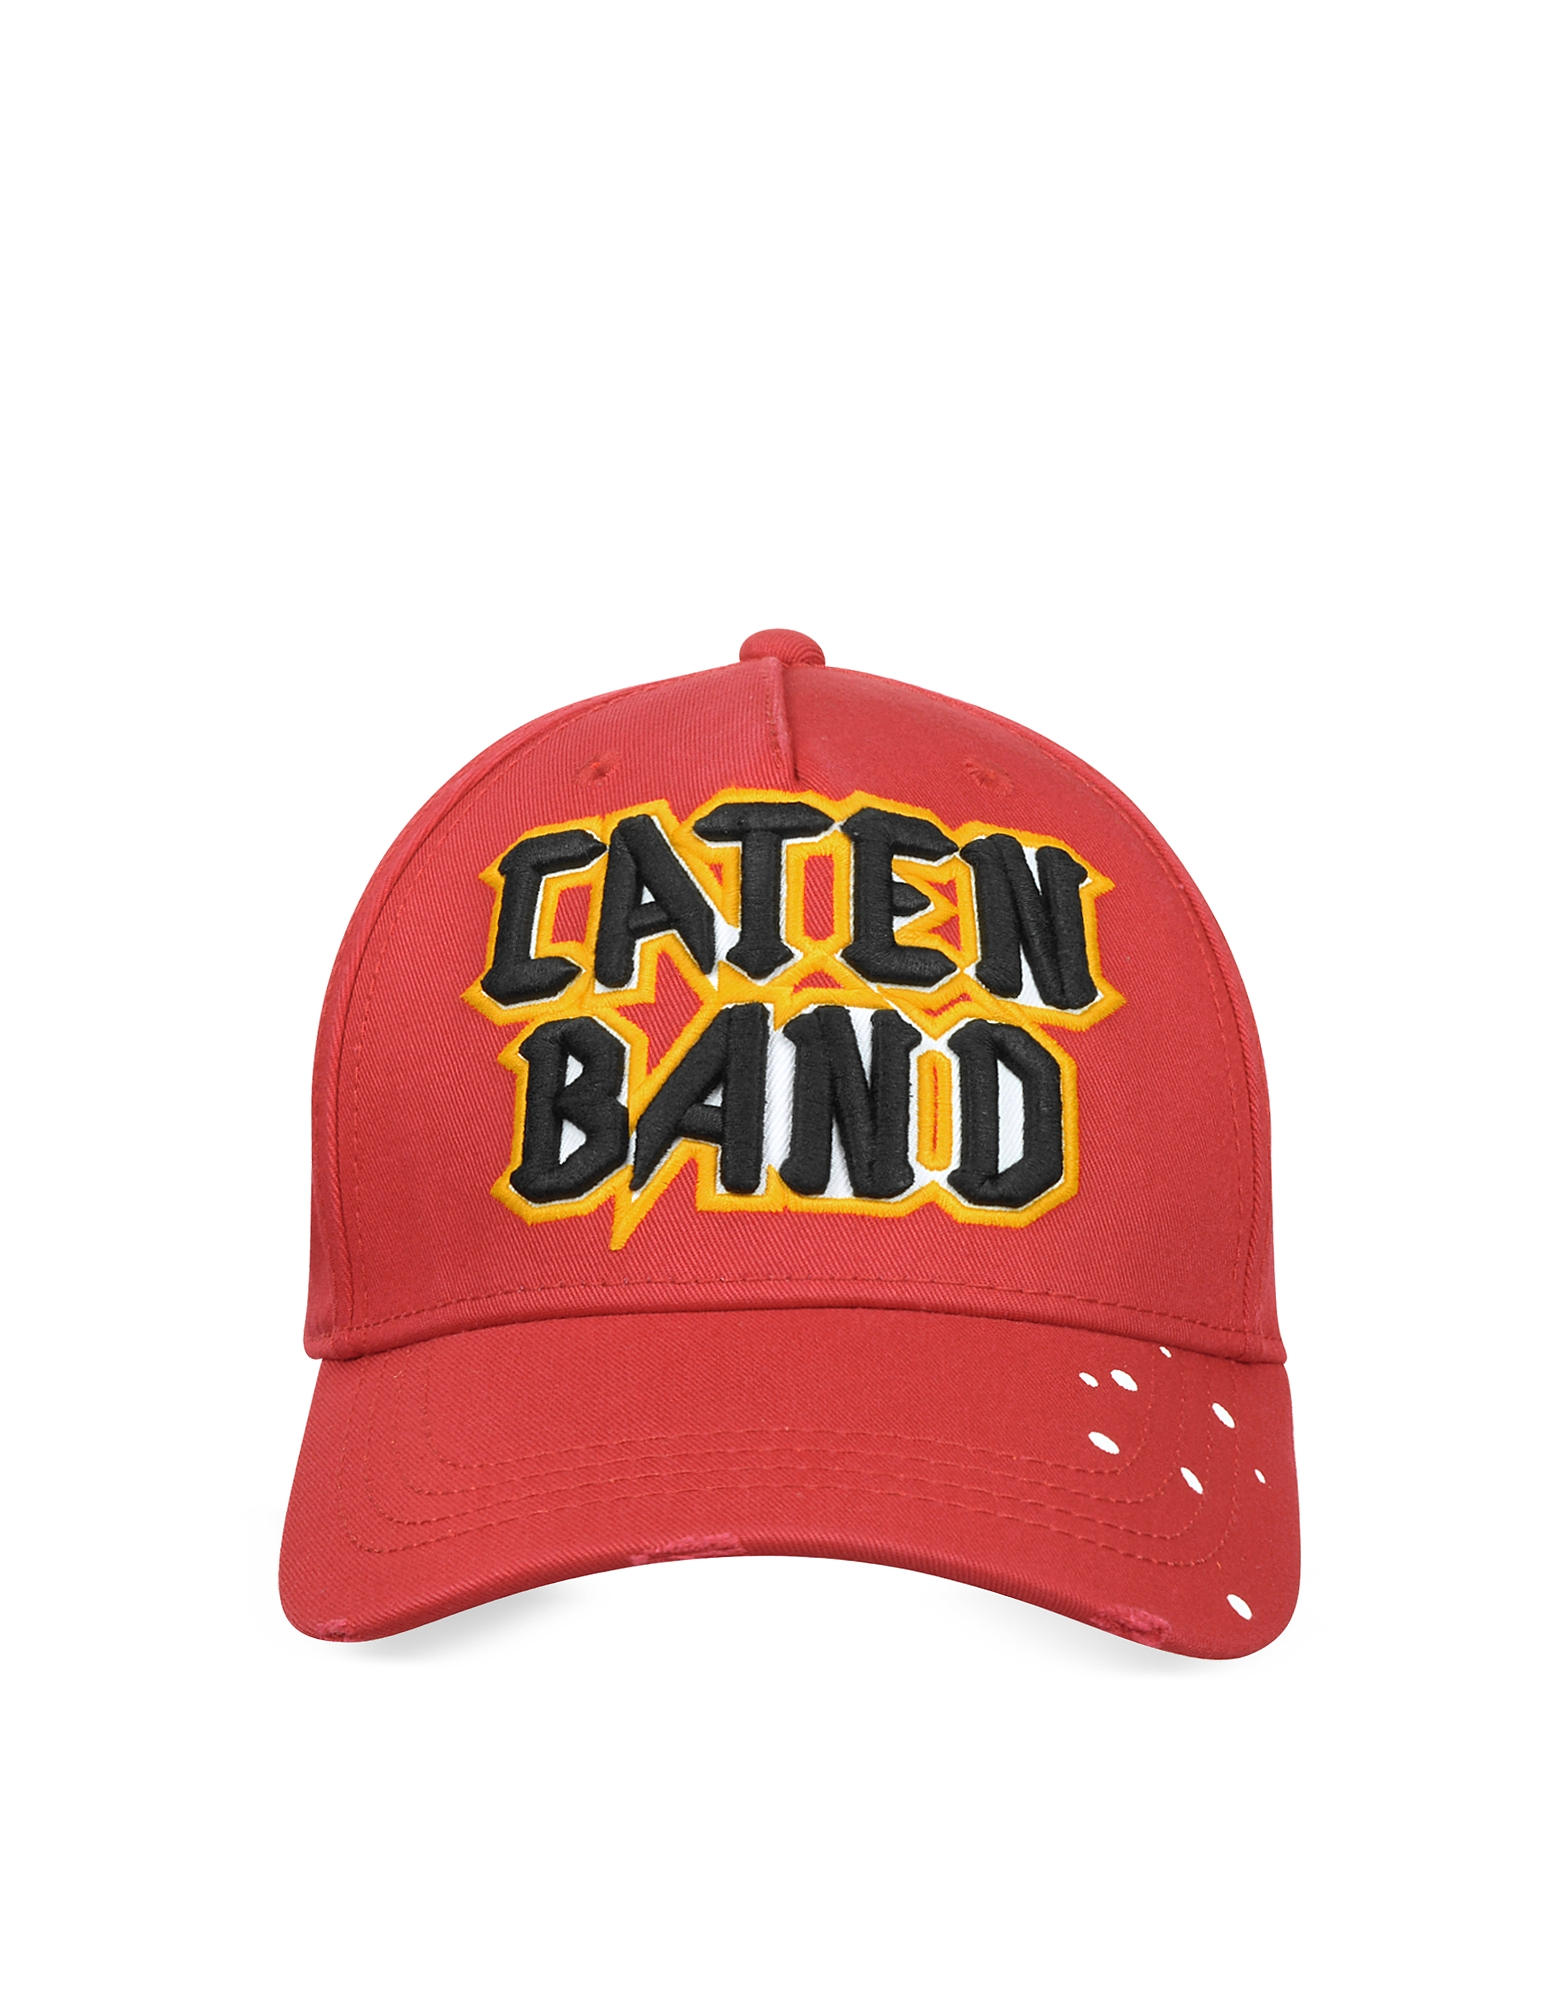 DSquared Caten band - ������� ��������� �� ������������� ������